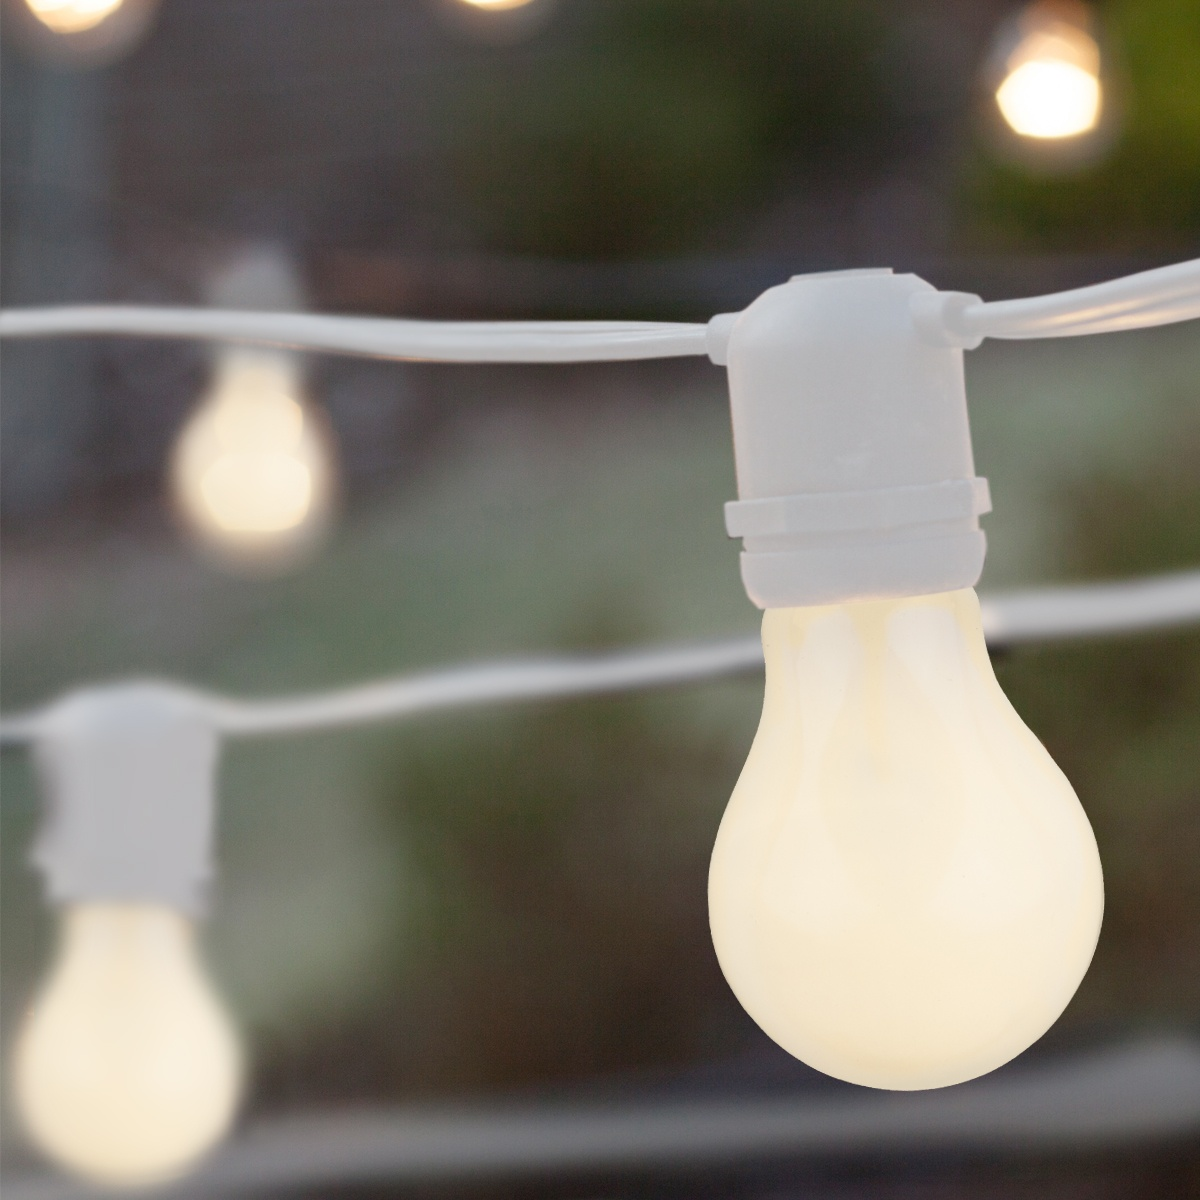 54u0027 Commercial Patio String With 24 A19 White Outdoor Patio Lights